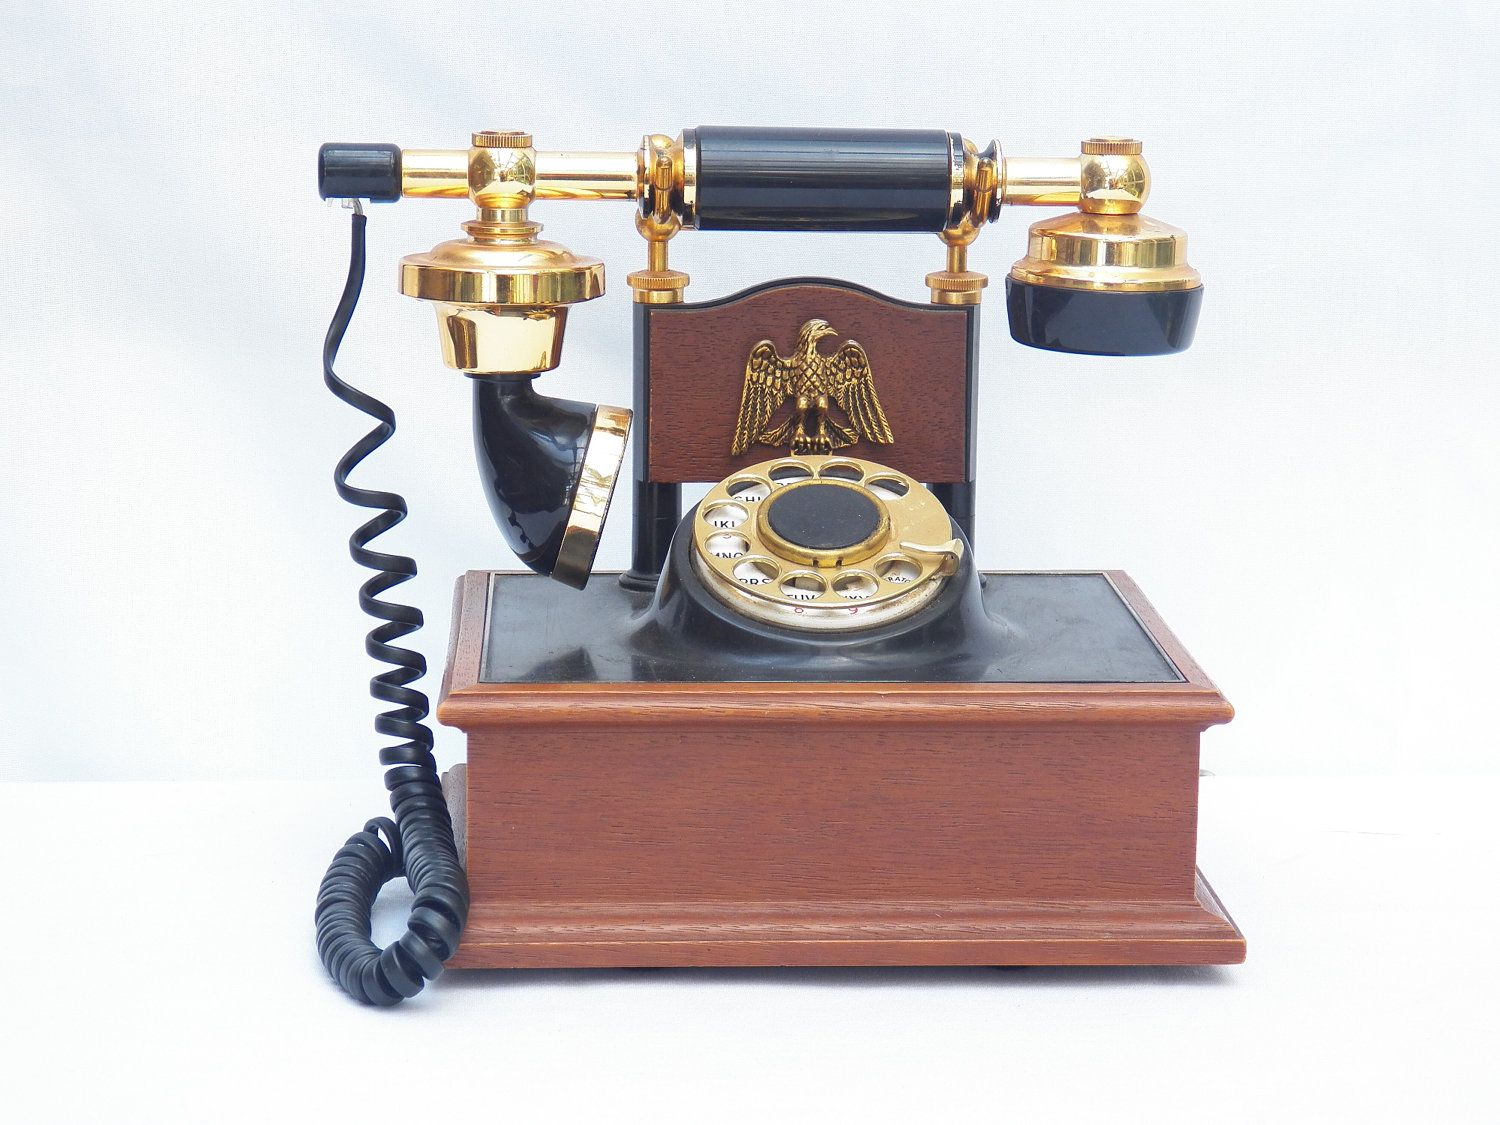 Vintage Deco Tel Rotary Dial Cradle Telephone-WORKING- American Eagle - Wood Brass - Antique Gold Model USA collectible- Fathers Day. $45.99, via Etsy.